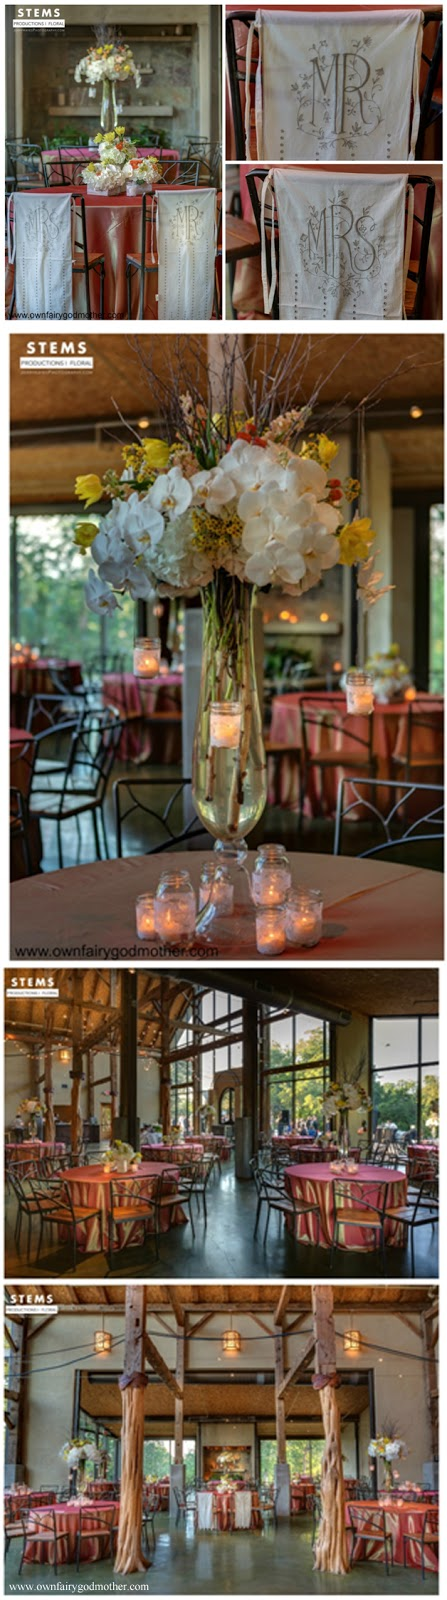 Real Wedding in Austin, TX at The Barr Mansion. Flowers by STEMS Floral Design. Wedding Planning by The Fairy Godmothers Weddings & Events